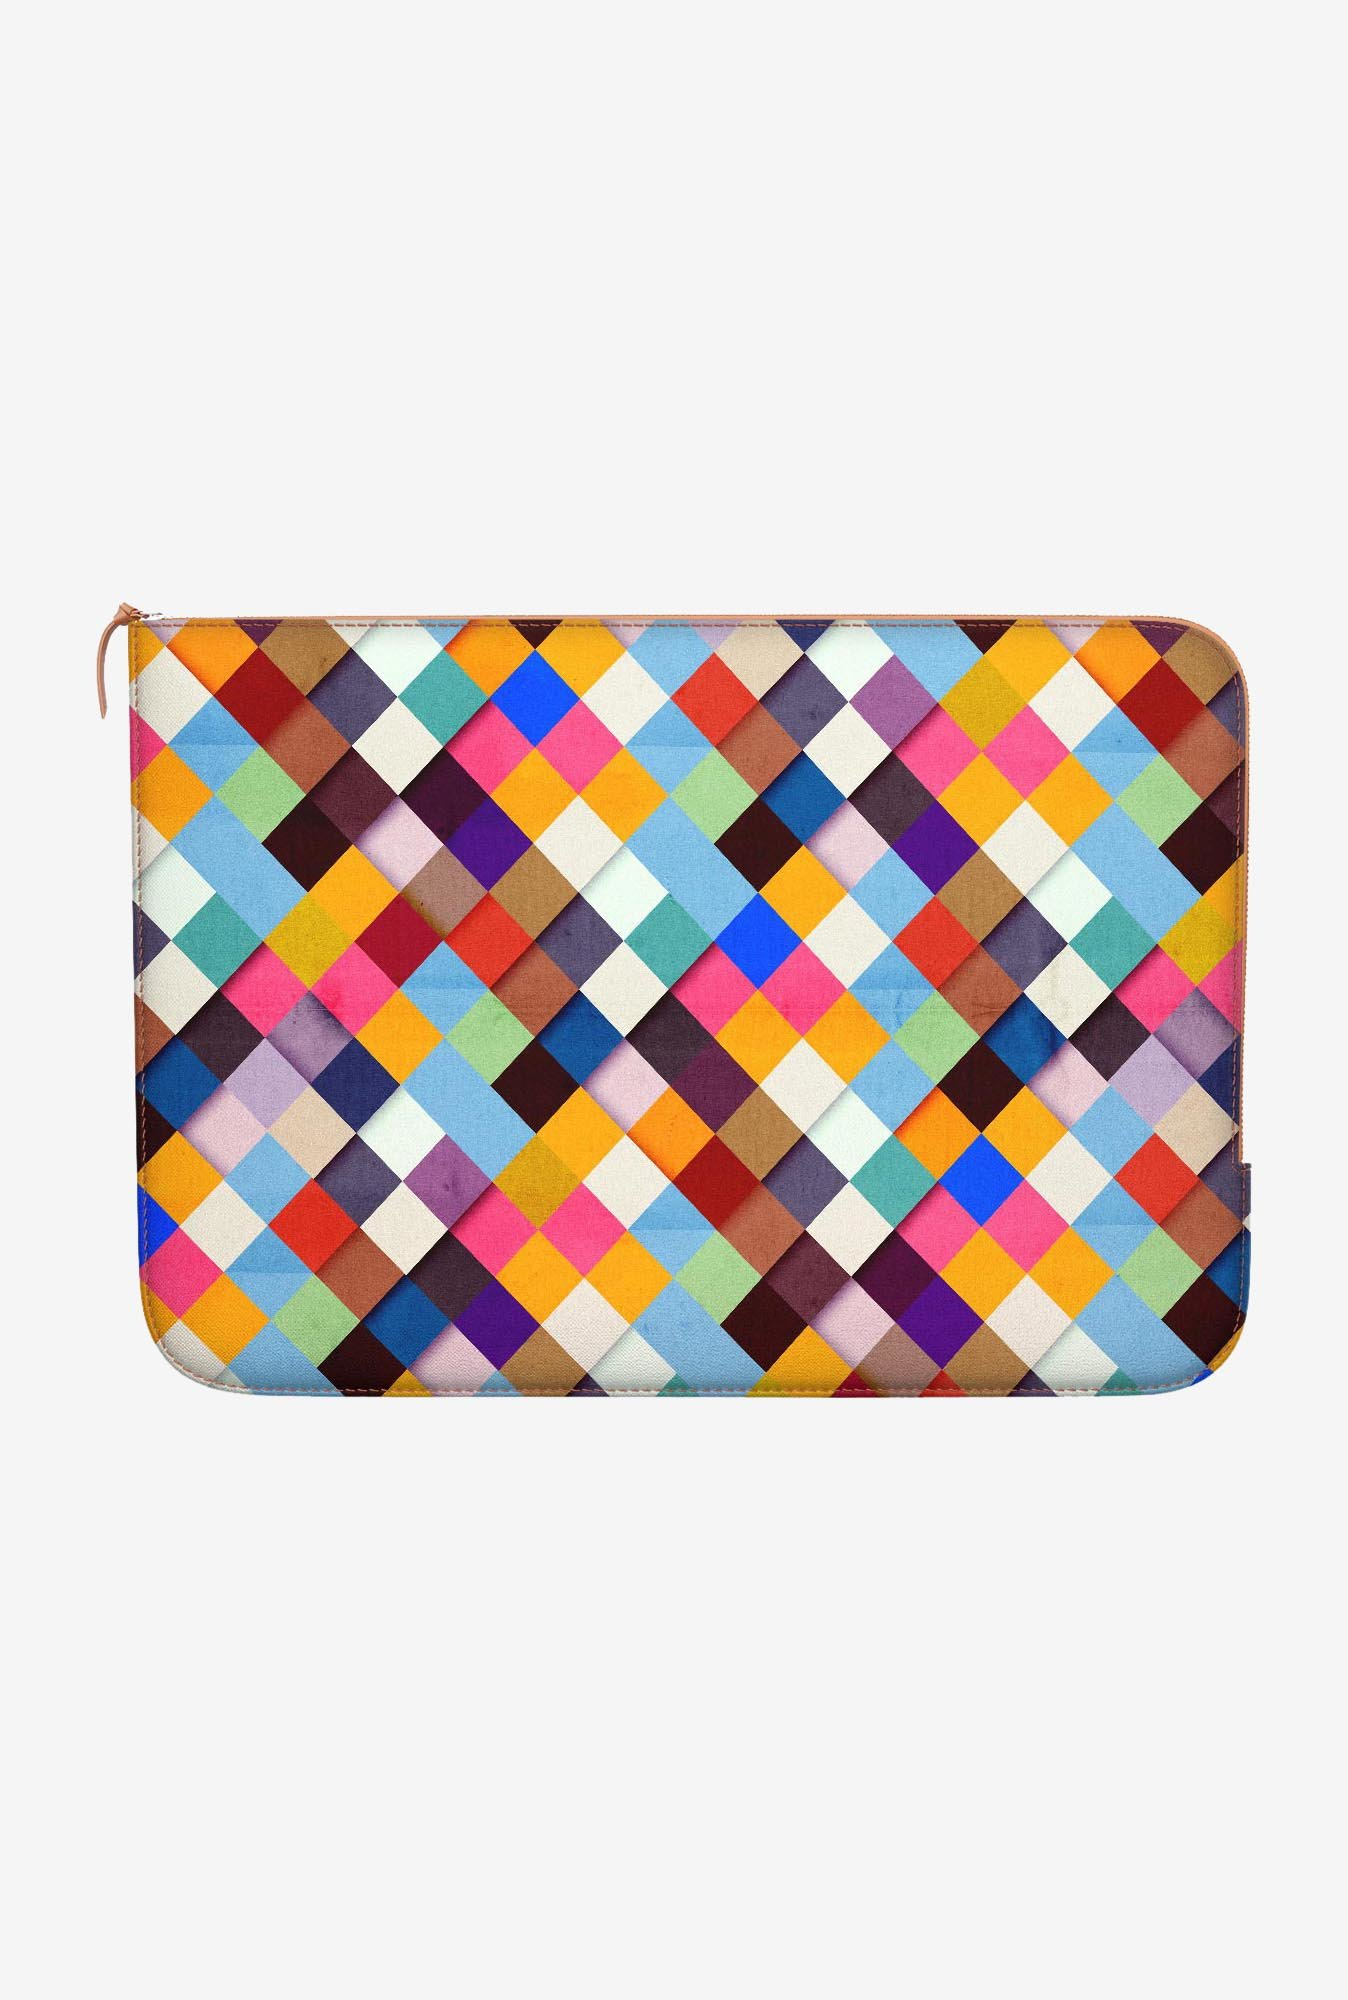 DailyObjects Pass this Bold MacBook Air 13 Zippered Sleeve